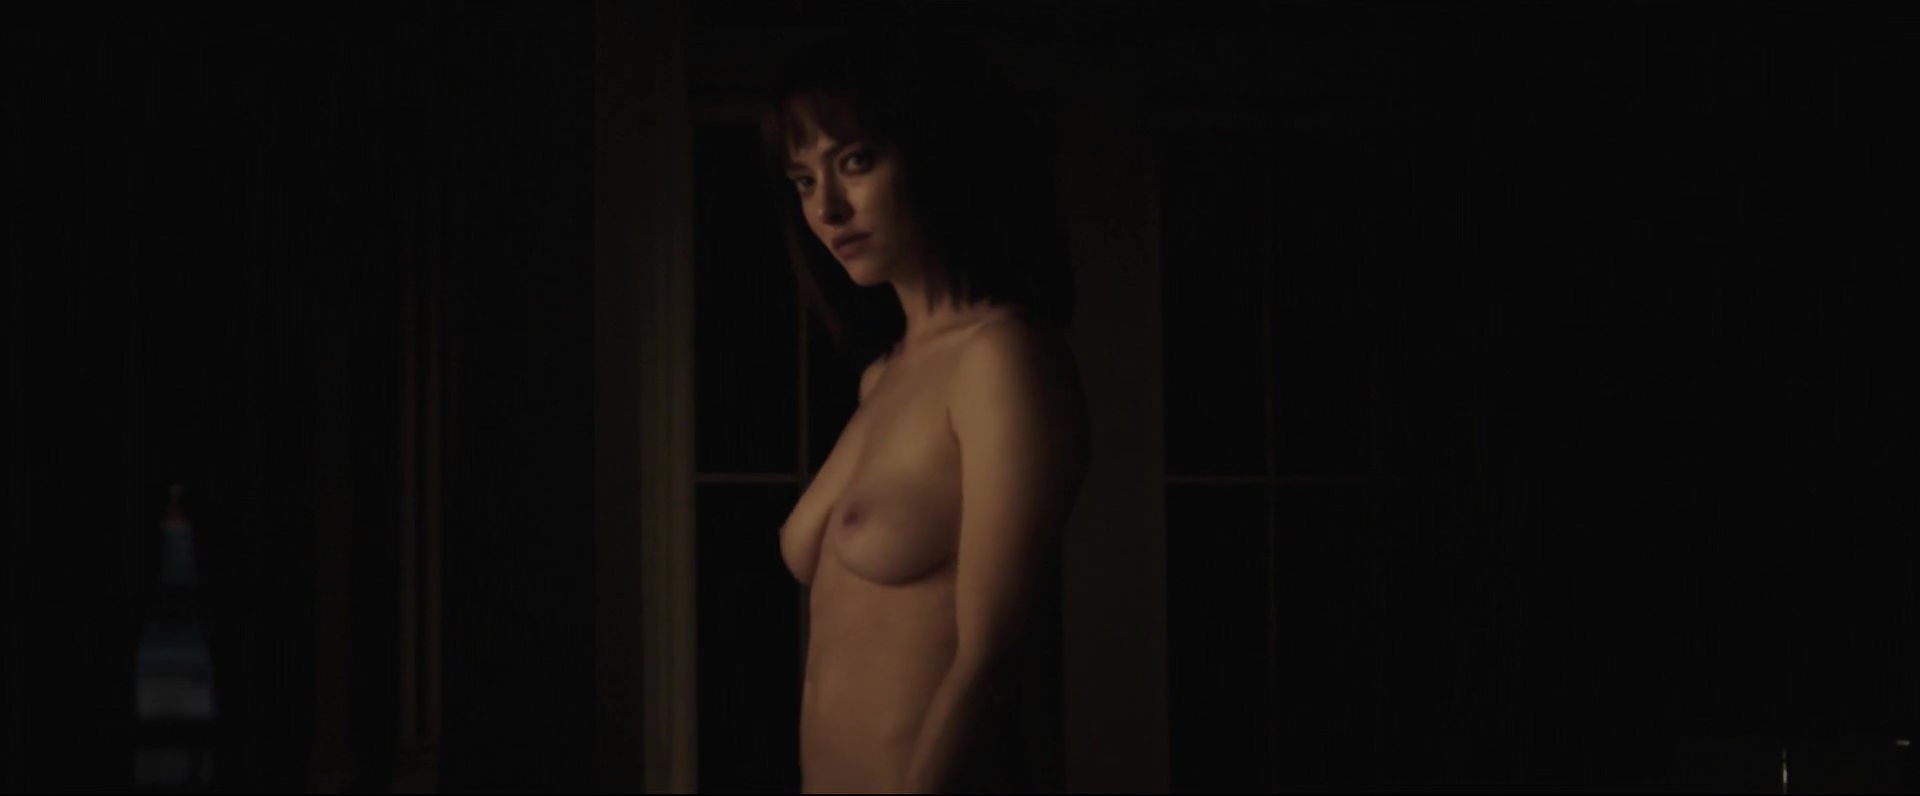 Amanda Seyfried Nude In Time amanda seyfried nude, naked - pics and videos - imperiodefamosas